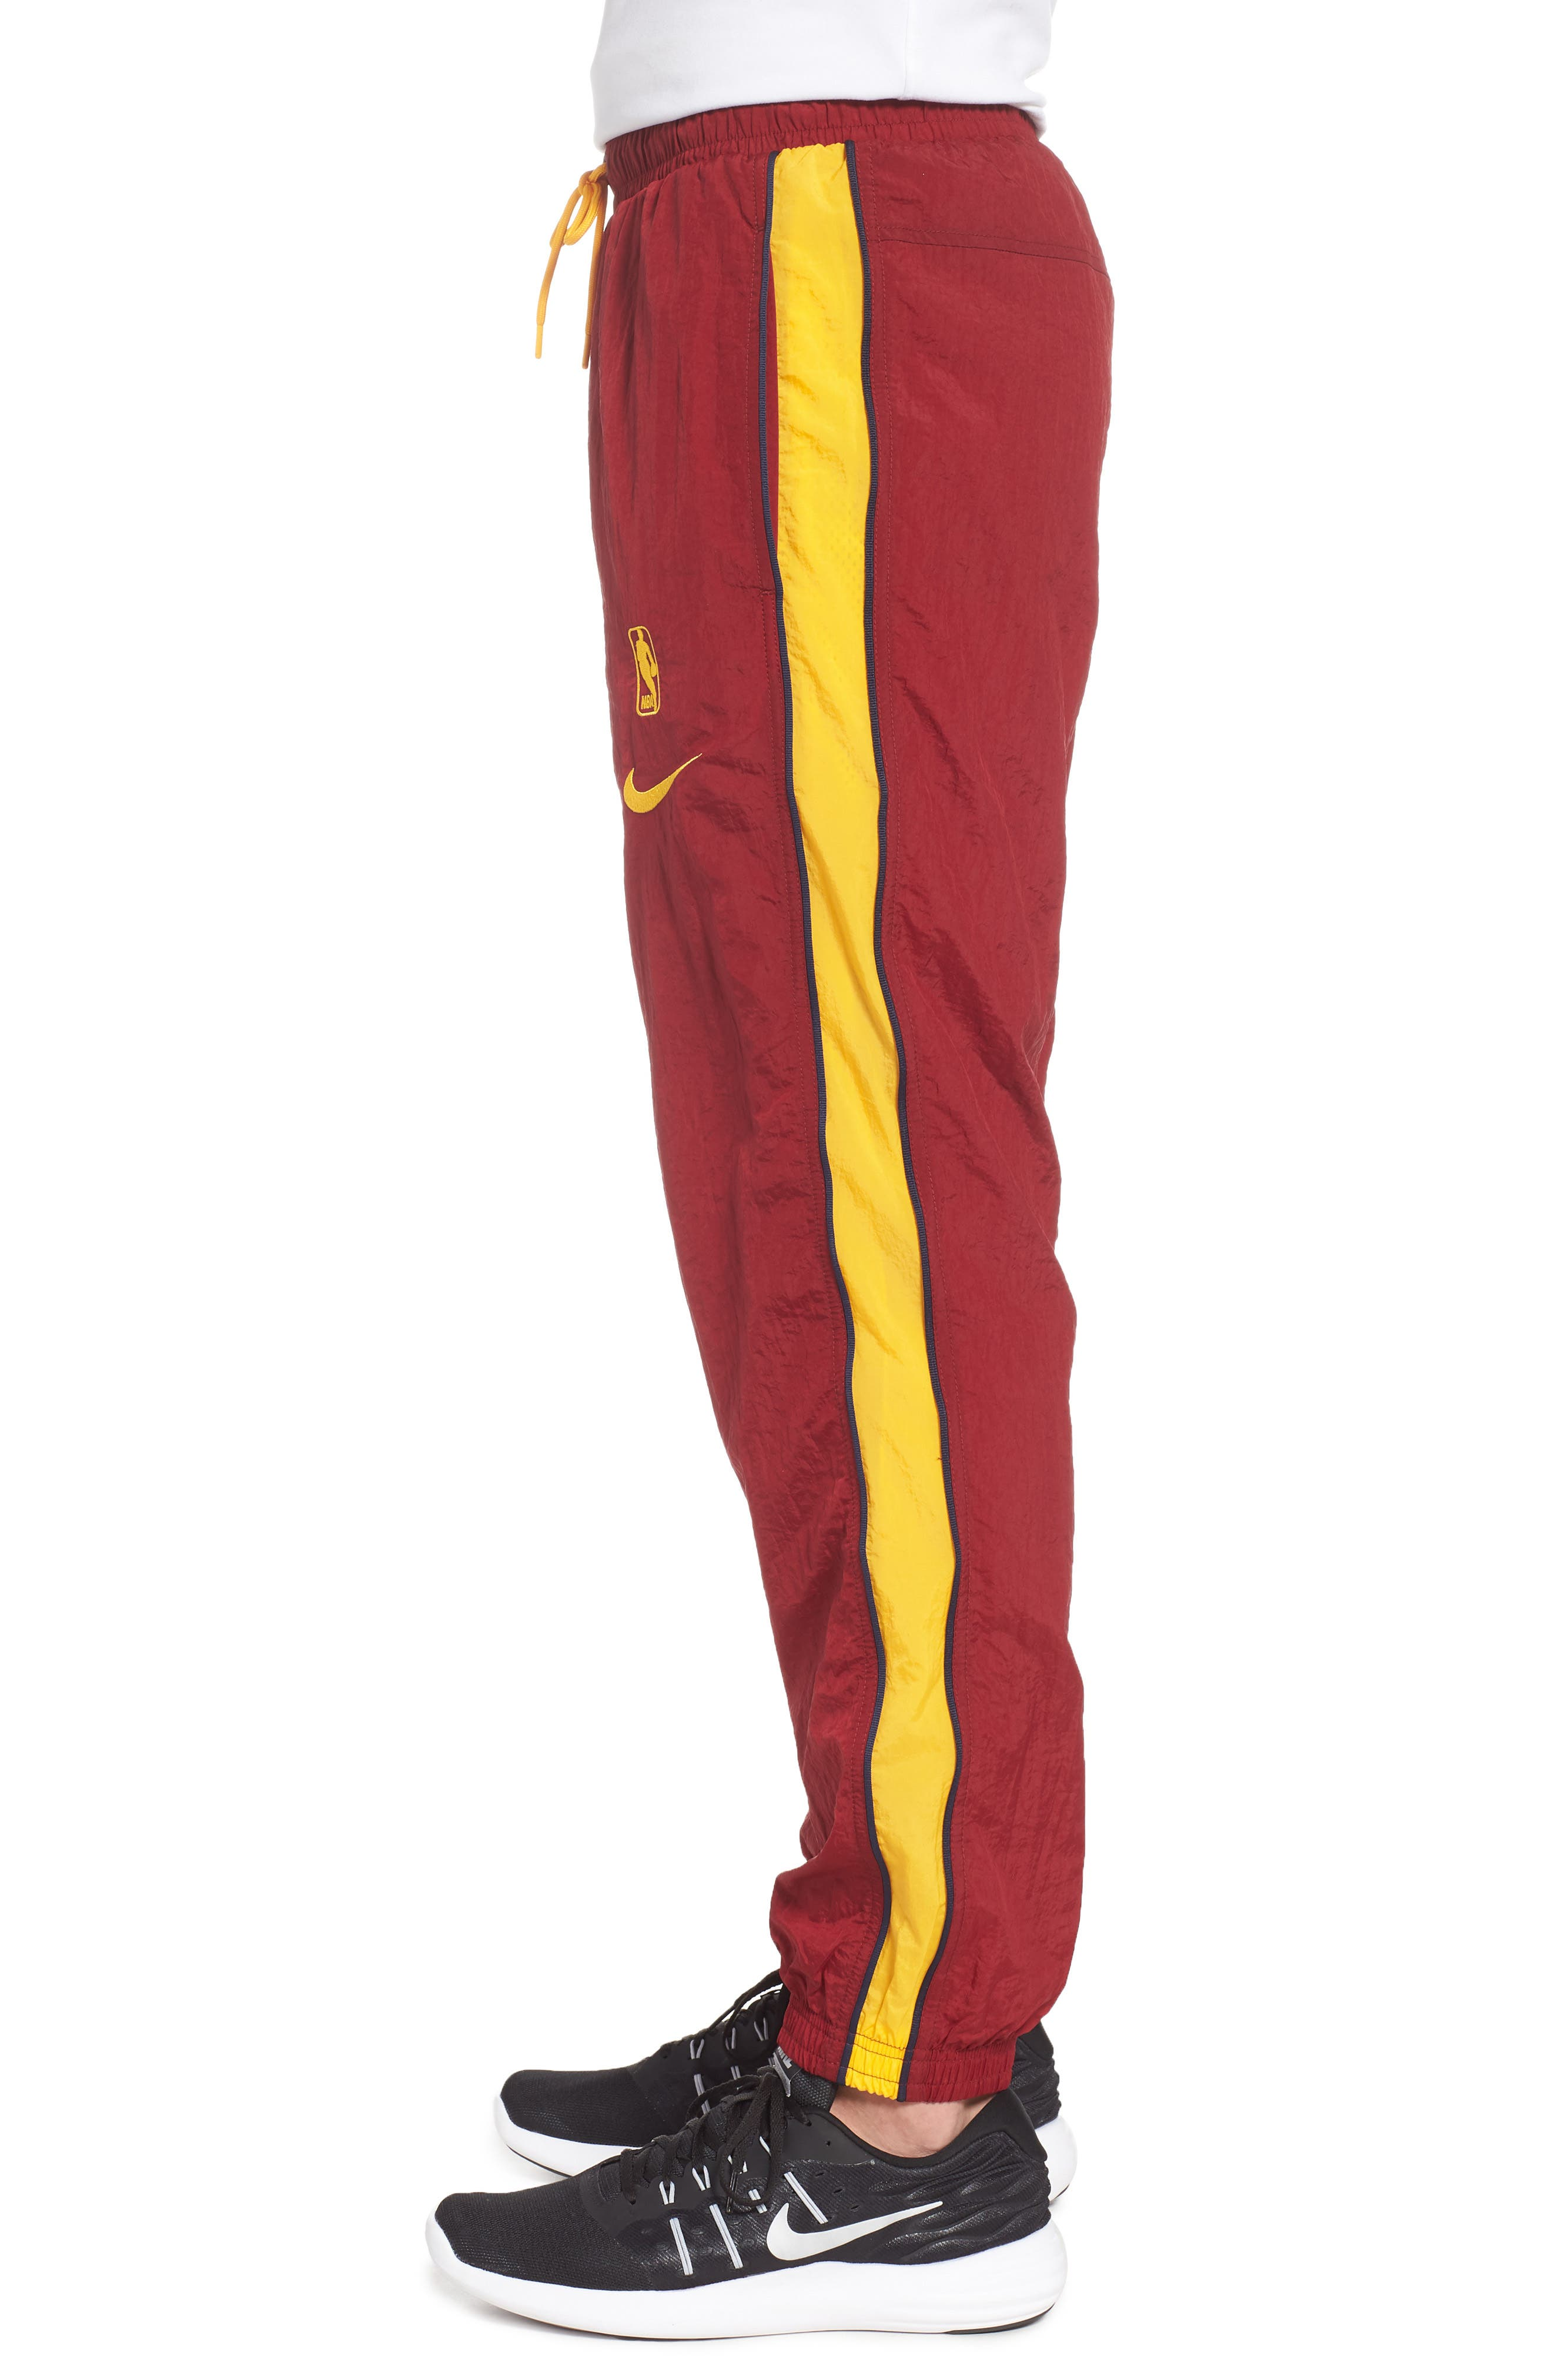 Cleveland Cavaliers Tracksuit Pants,                             Alternate thumbnail 3, color,                             TEAM RED/ UNIVERSITY GOLD